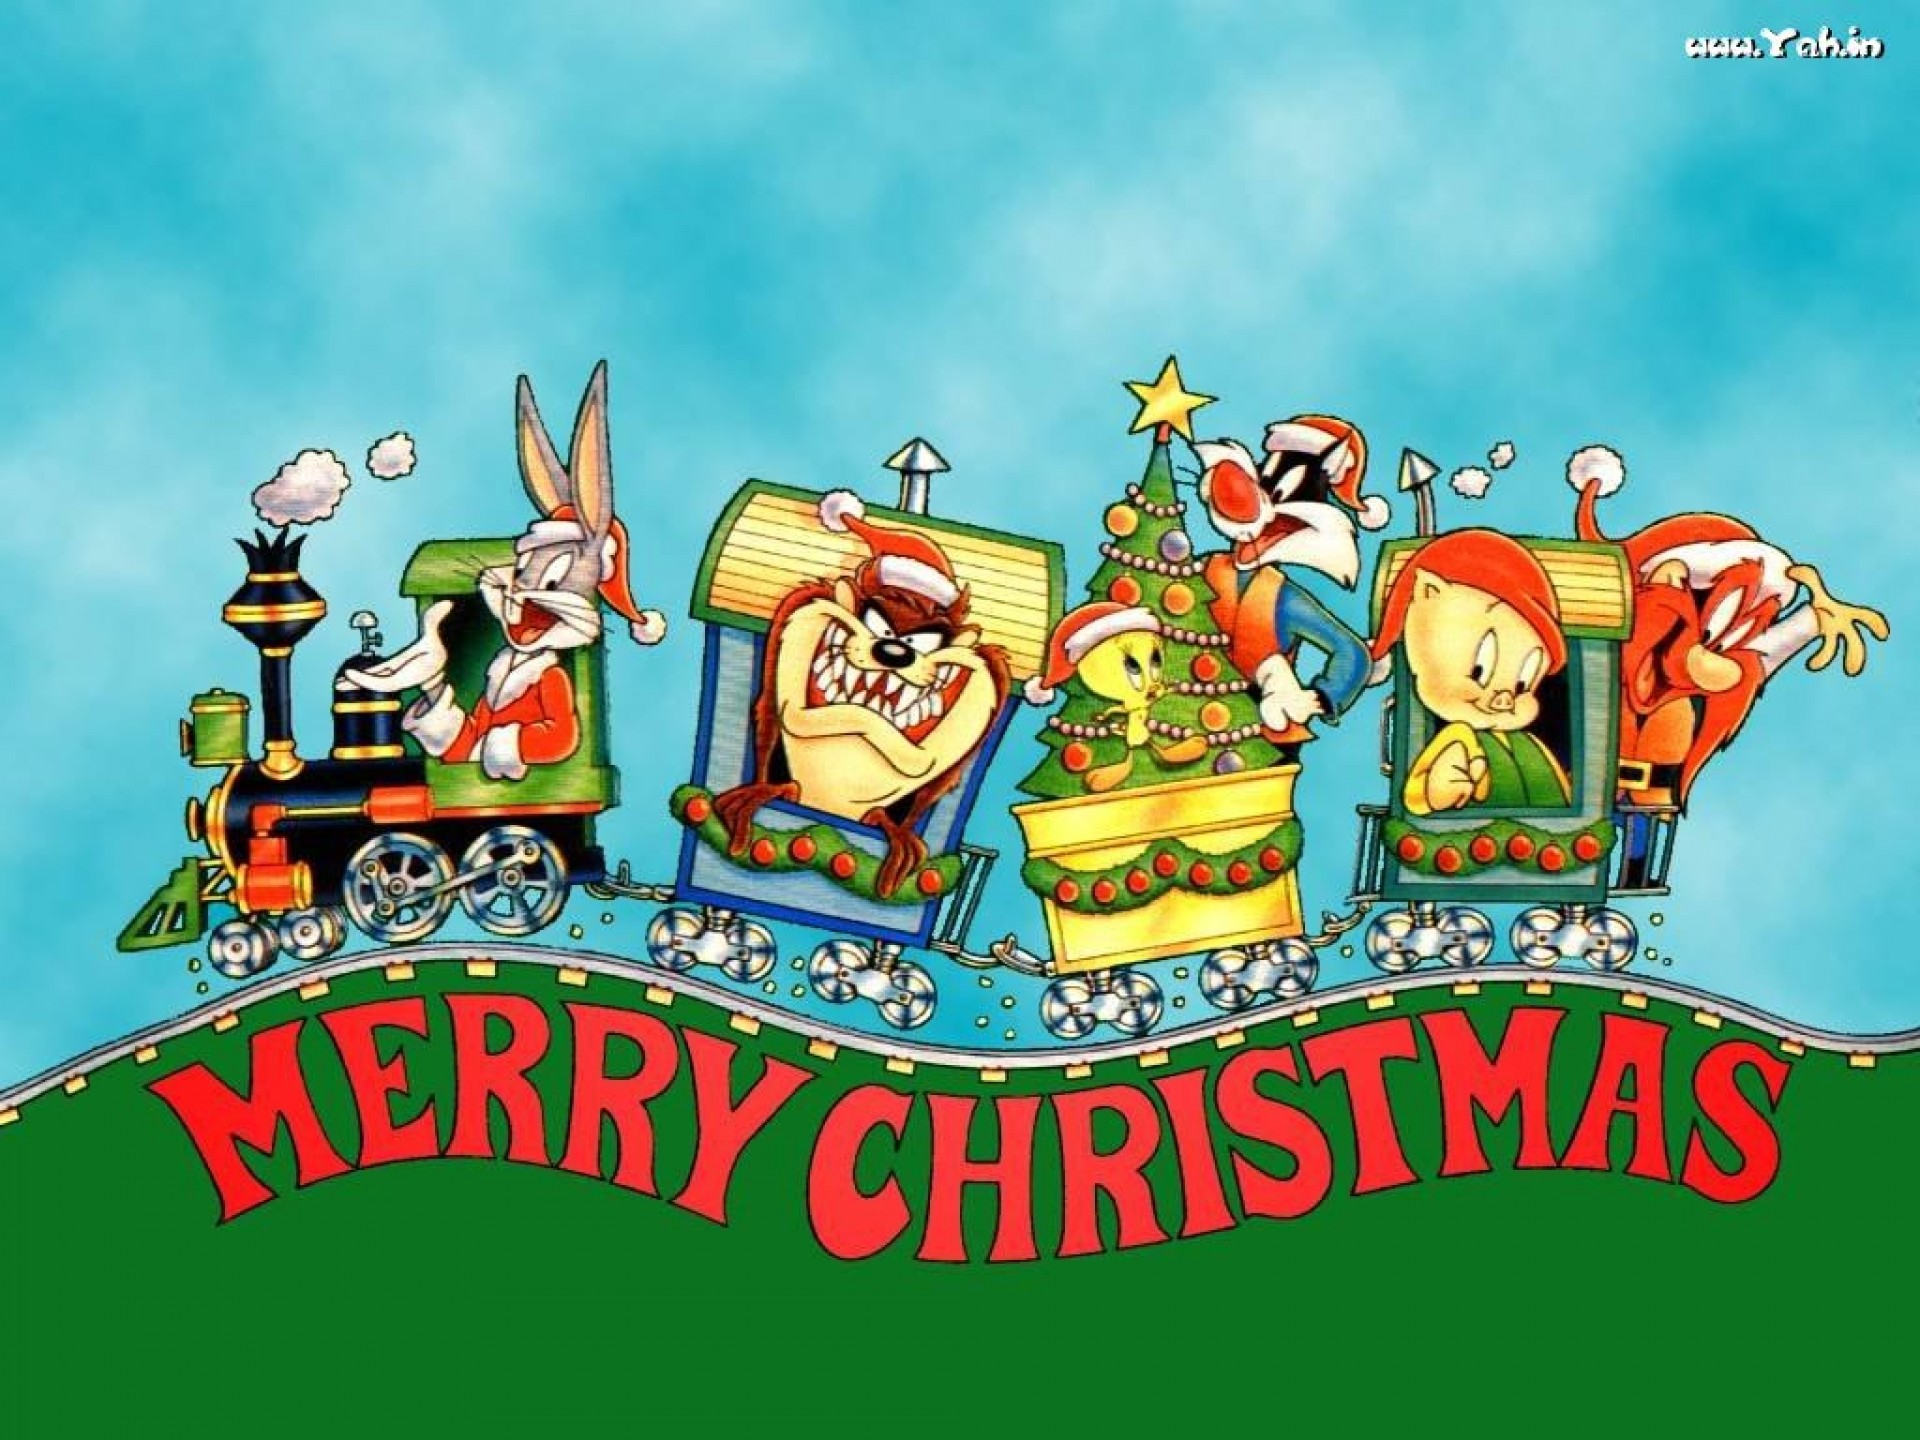 1920x1440 Looney tunes christmas hm wallpaper |  | 184435 | WallpaperUP